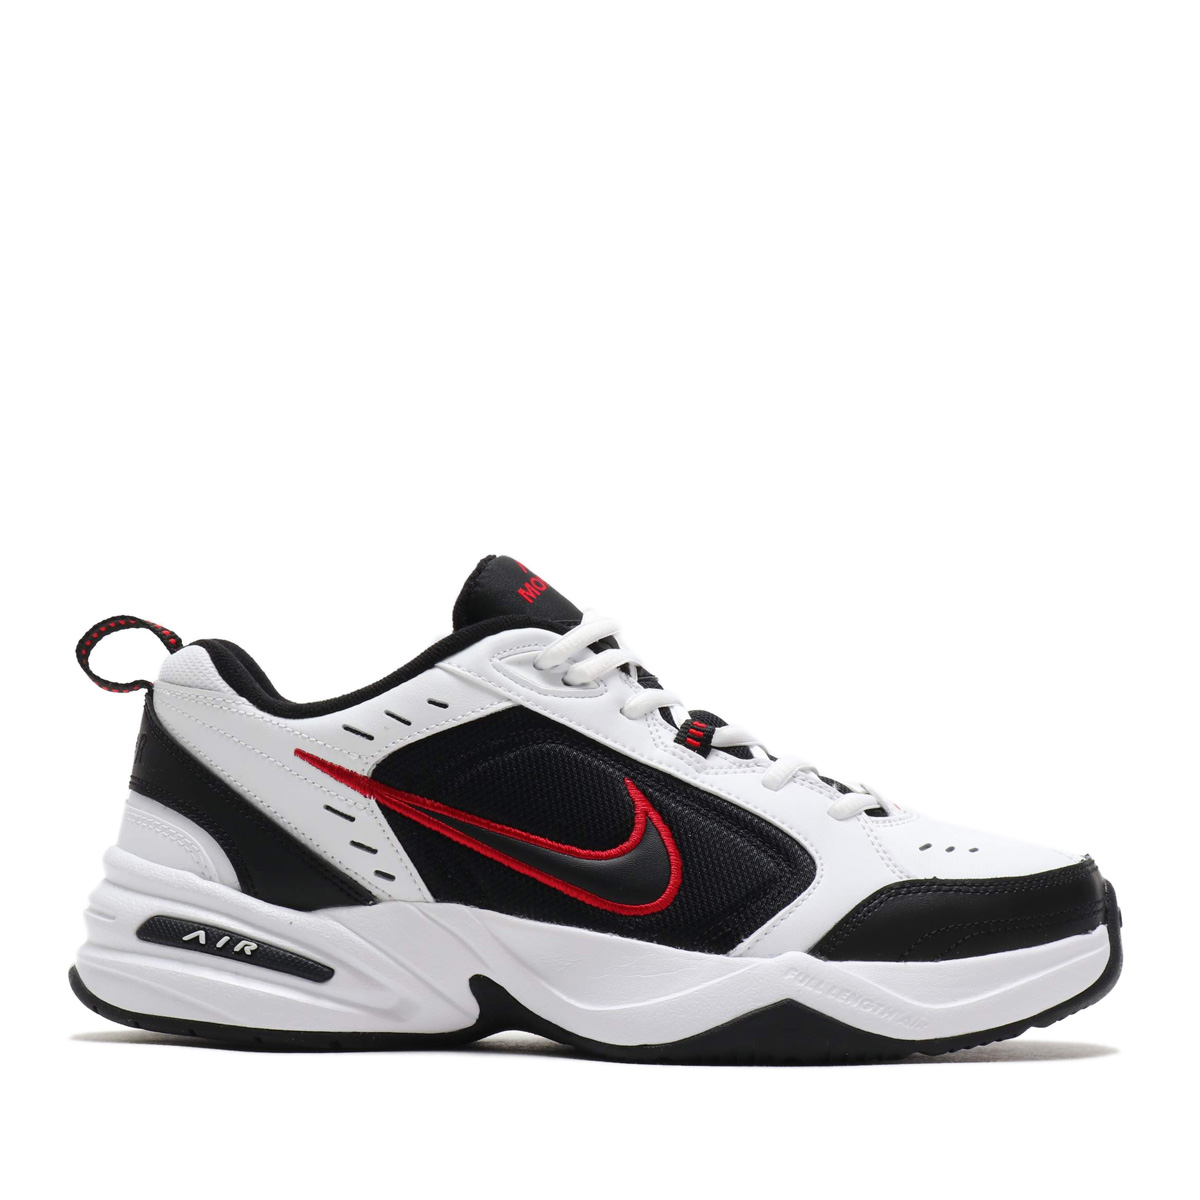 new product 9e72a 24d76 Categories. « All Categories · Shoes · Men s Shoes · Sneakers · NIKE AIR  MONARCH IV (WHITE BLACK) ...